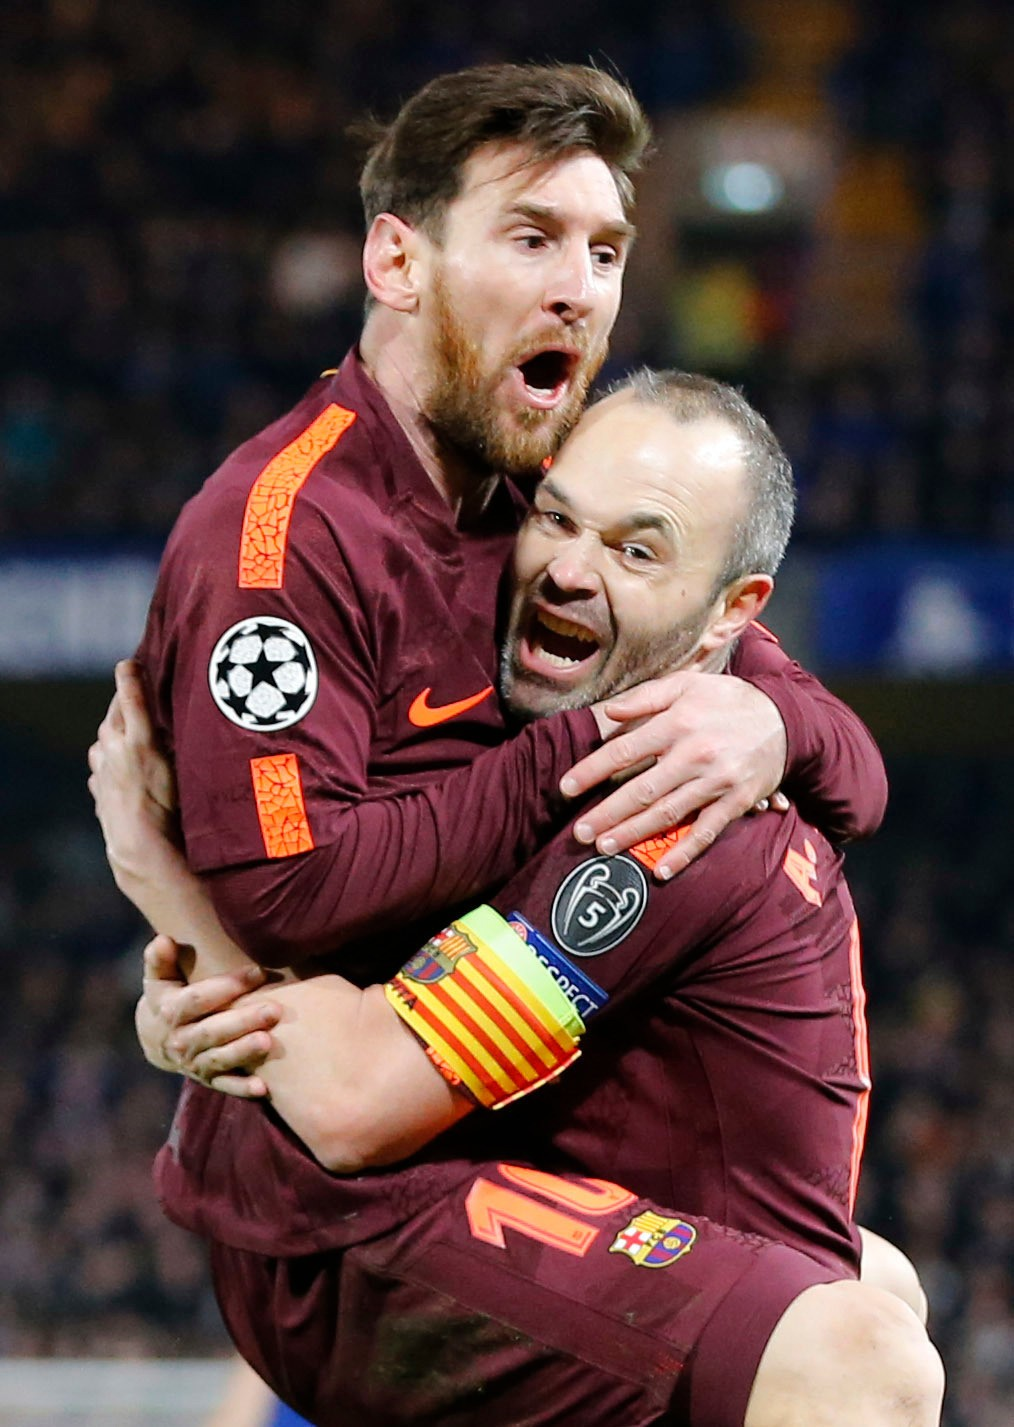 FILE - In this Tuesday, Feb. 20, 2018 file photo Barcelona's Lionel Messi celebrates with Andres Iniesta scoring his side's first goal during a Champi...